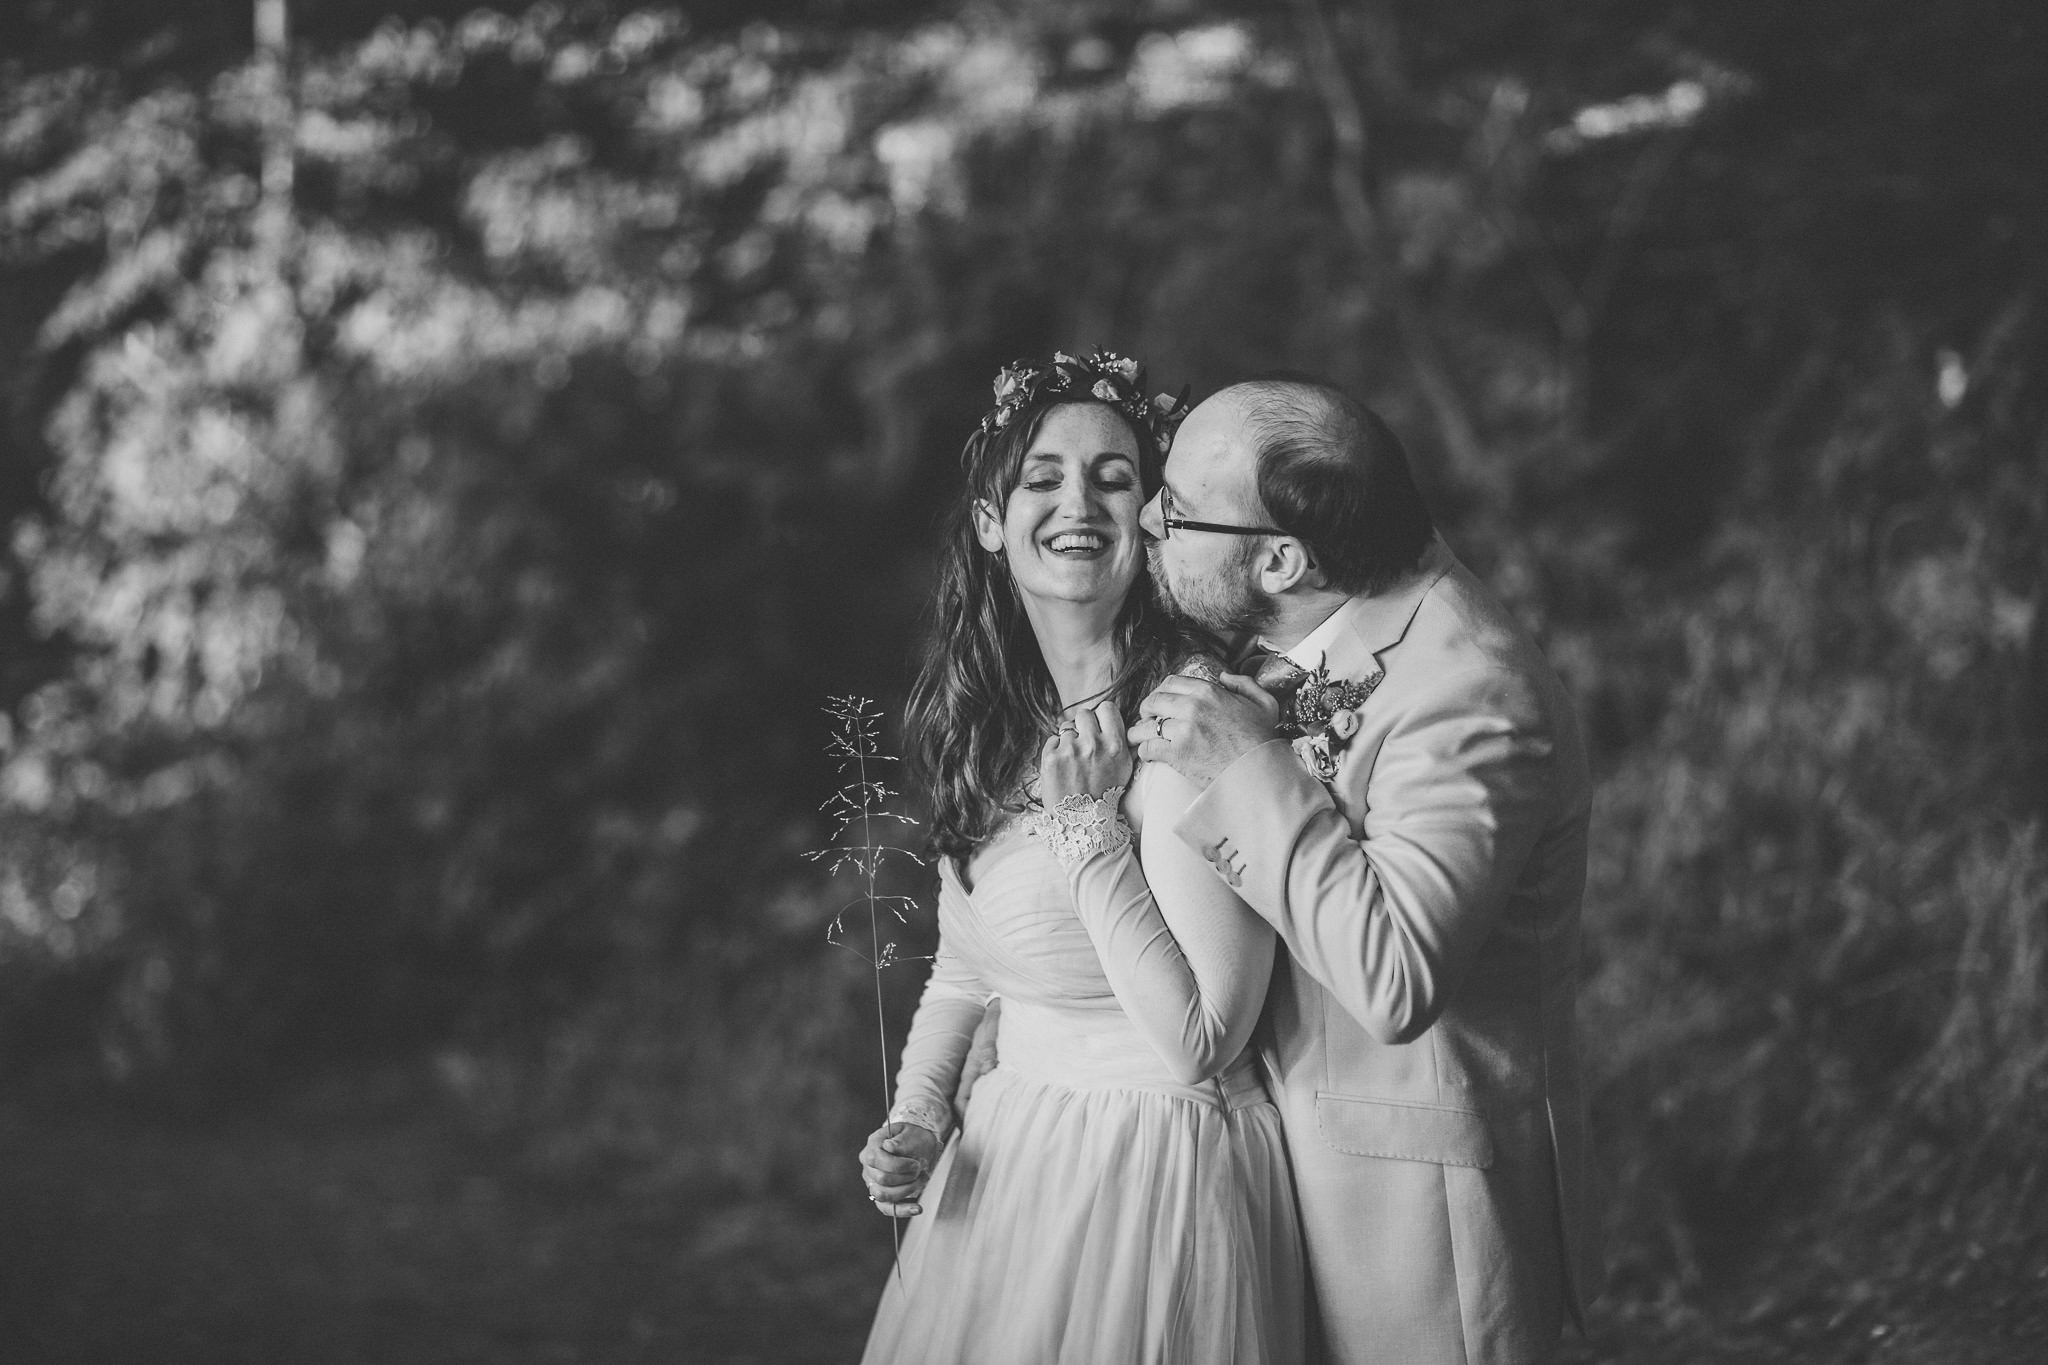 paul-marbrook-Fforest-Wedding-Photographer-90083